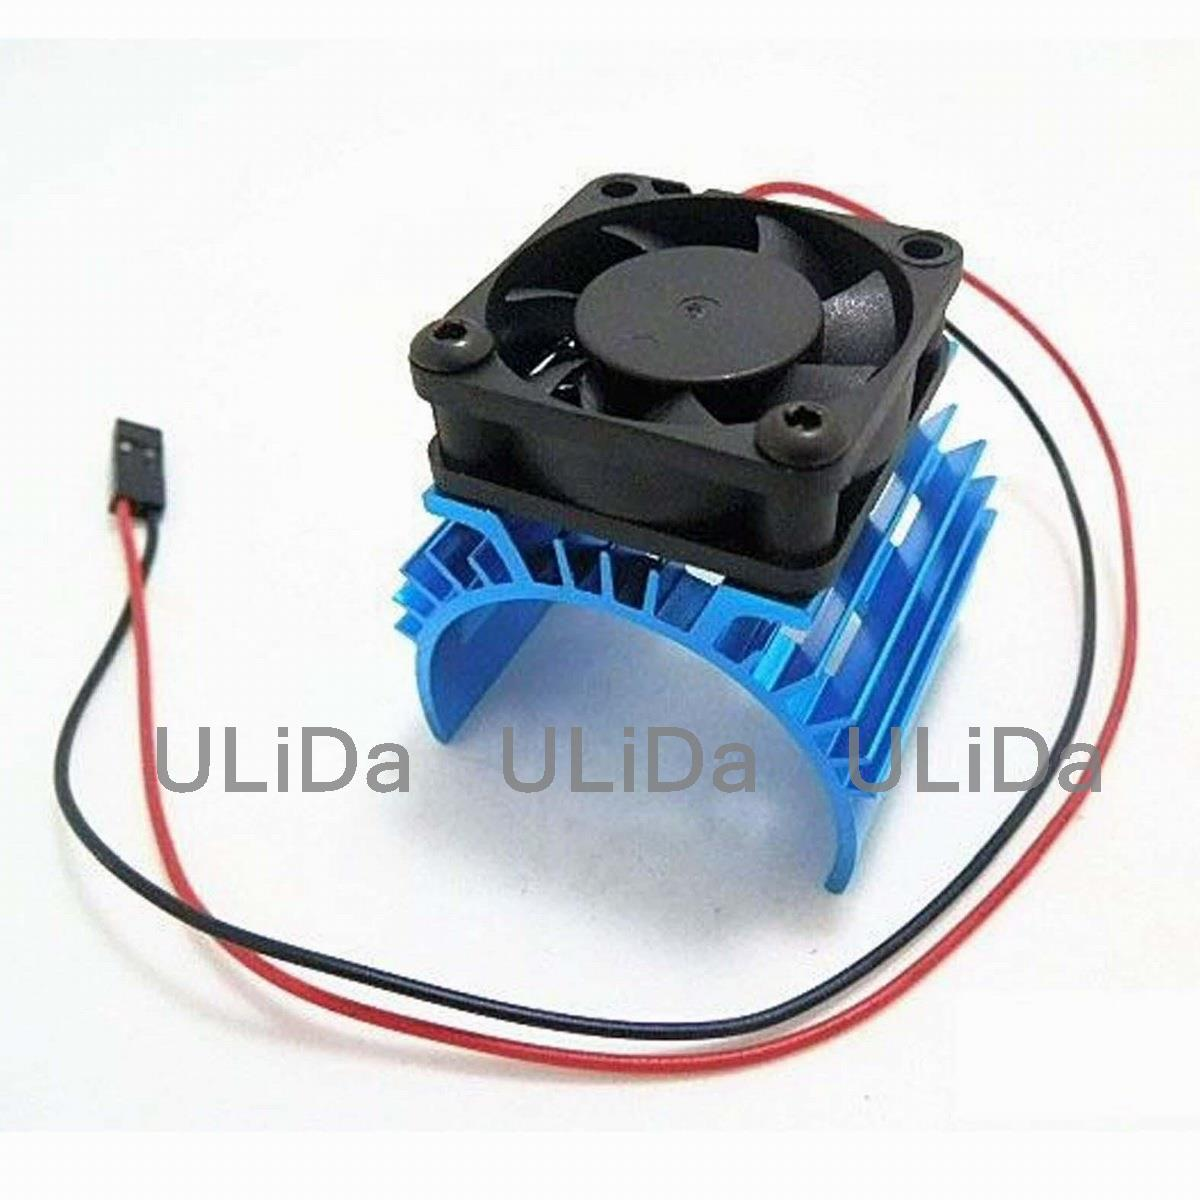 electric car motor for sale. Hot On Sale Blue RC Parts Electric Car Motor Heatsink Cover + Cooling Fan For 1:10 HSP 540 550 3650 Size Heat Sin-in \u0026 Accessories From I